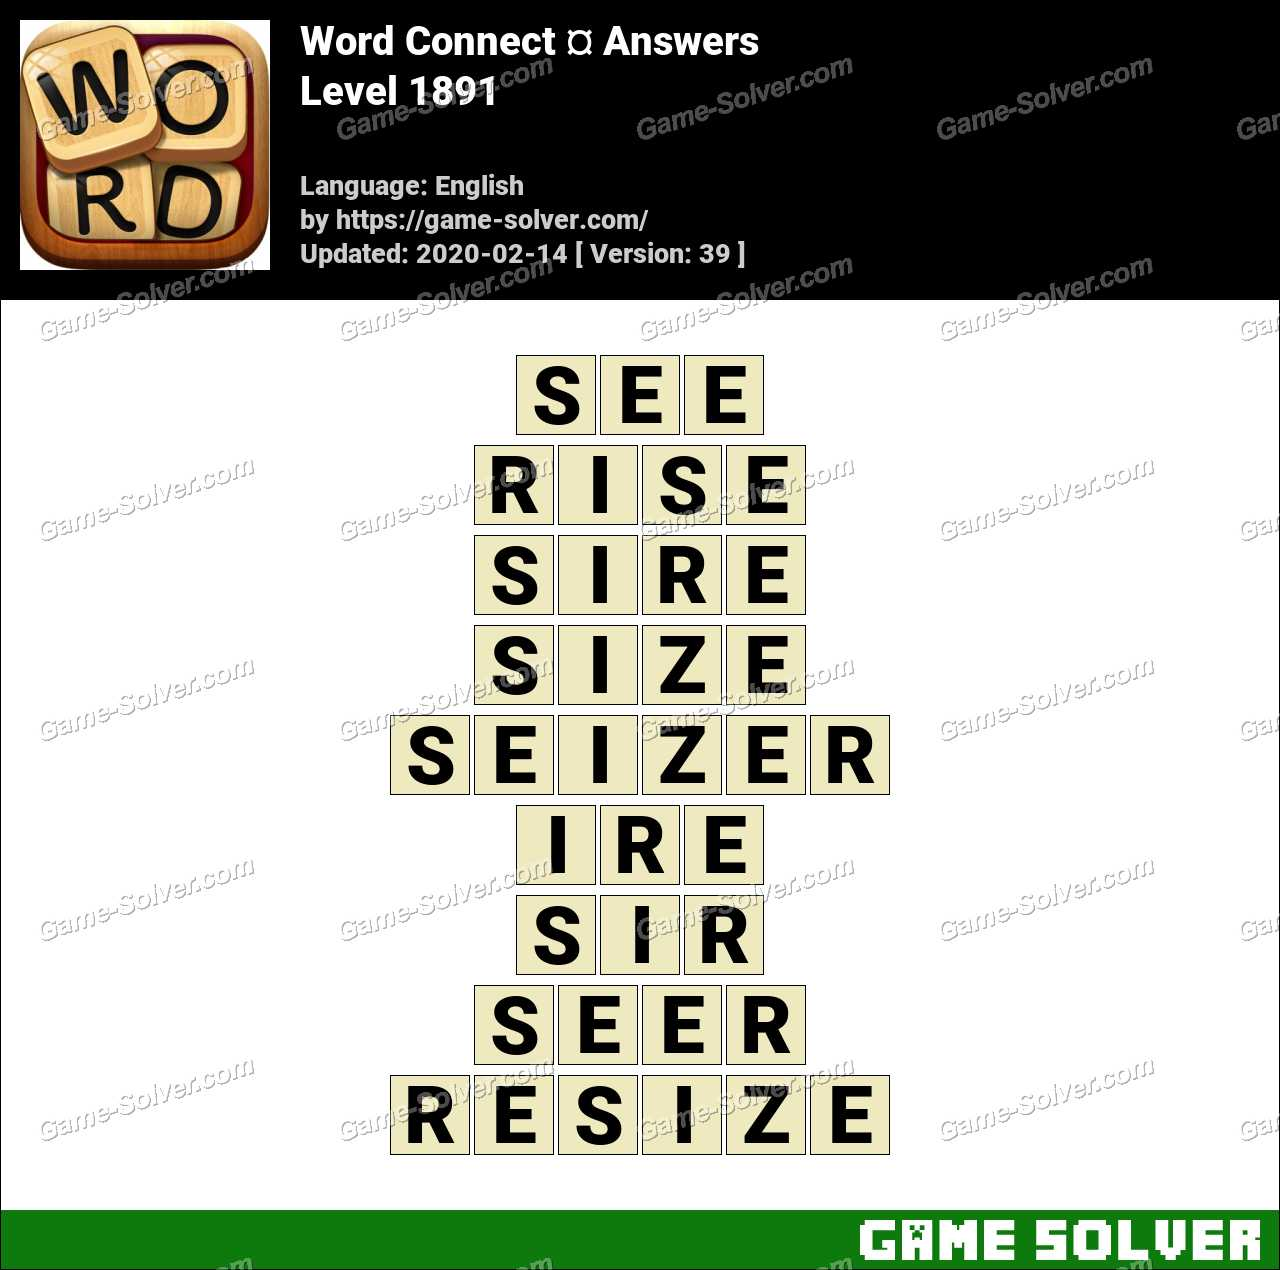 Word Connect Level 1891 Answers